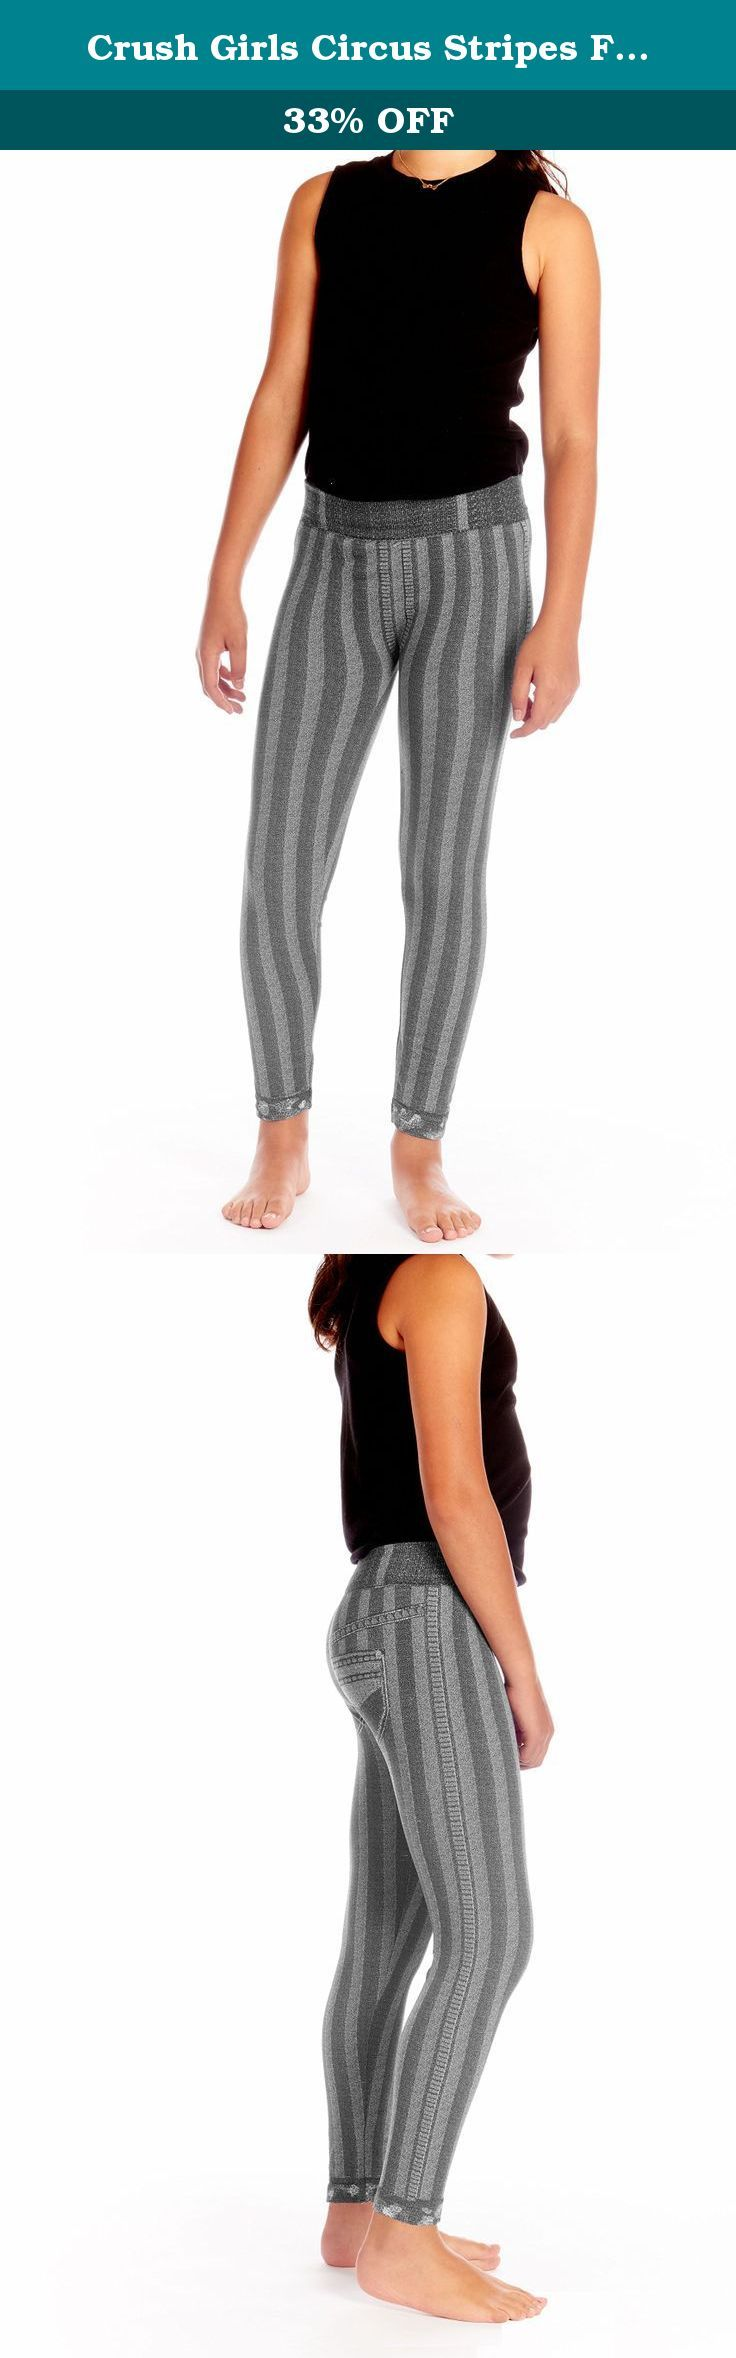 Crush Girls Circus Stripes Faded Denim Jeans Leggings Pants Size 7 - 16 Black. If your girls are active, sporty or just love leggings and yoga pants, and wear them all the time, then you will love Crush's high-waited leggings. Great for active days, lounging and casual wear. Easy pull-on and off fashion is perfect for school and play. Neutral colors go with everything for endless versatility.